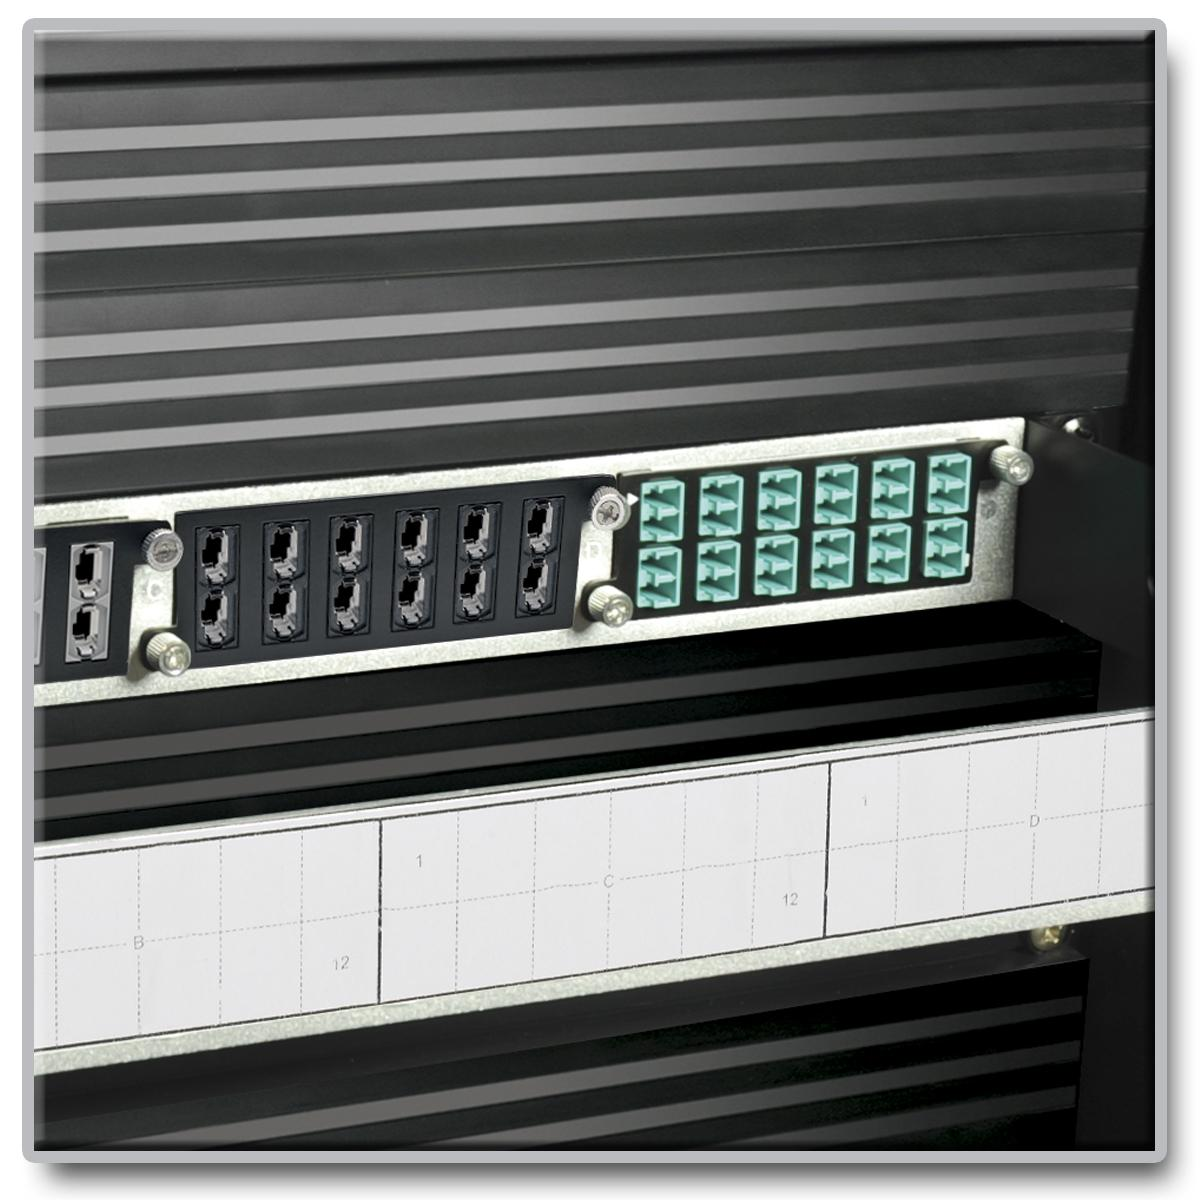 Tripp Lite 100gb 120gb Pass Through Cassette 12 24 Fiber Mtp Mpo Mtpmpocrossovercablediagram1jpg High Density For 100 Cable Connections